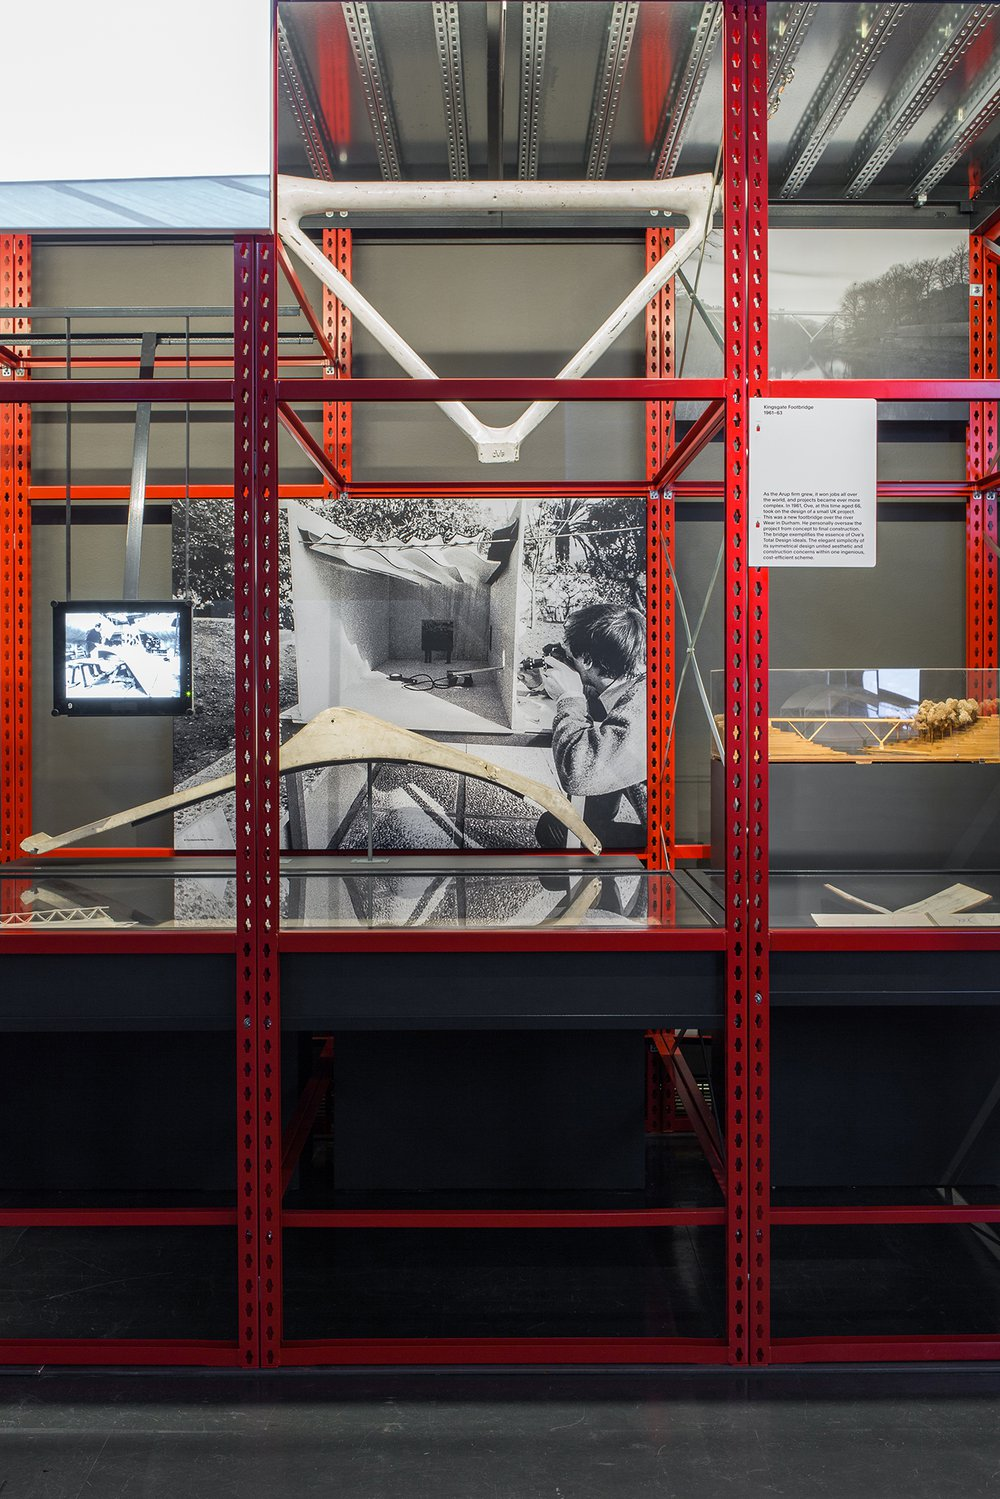 Engineering the World: Ove Arup and the Philosophy of Total Design, V&A